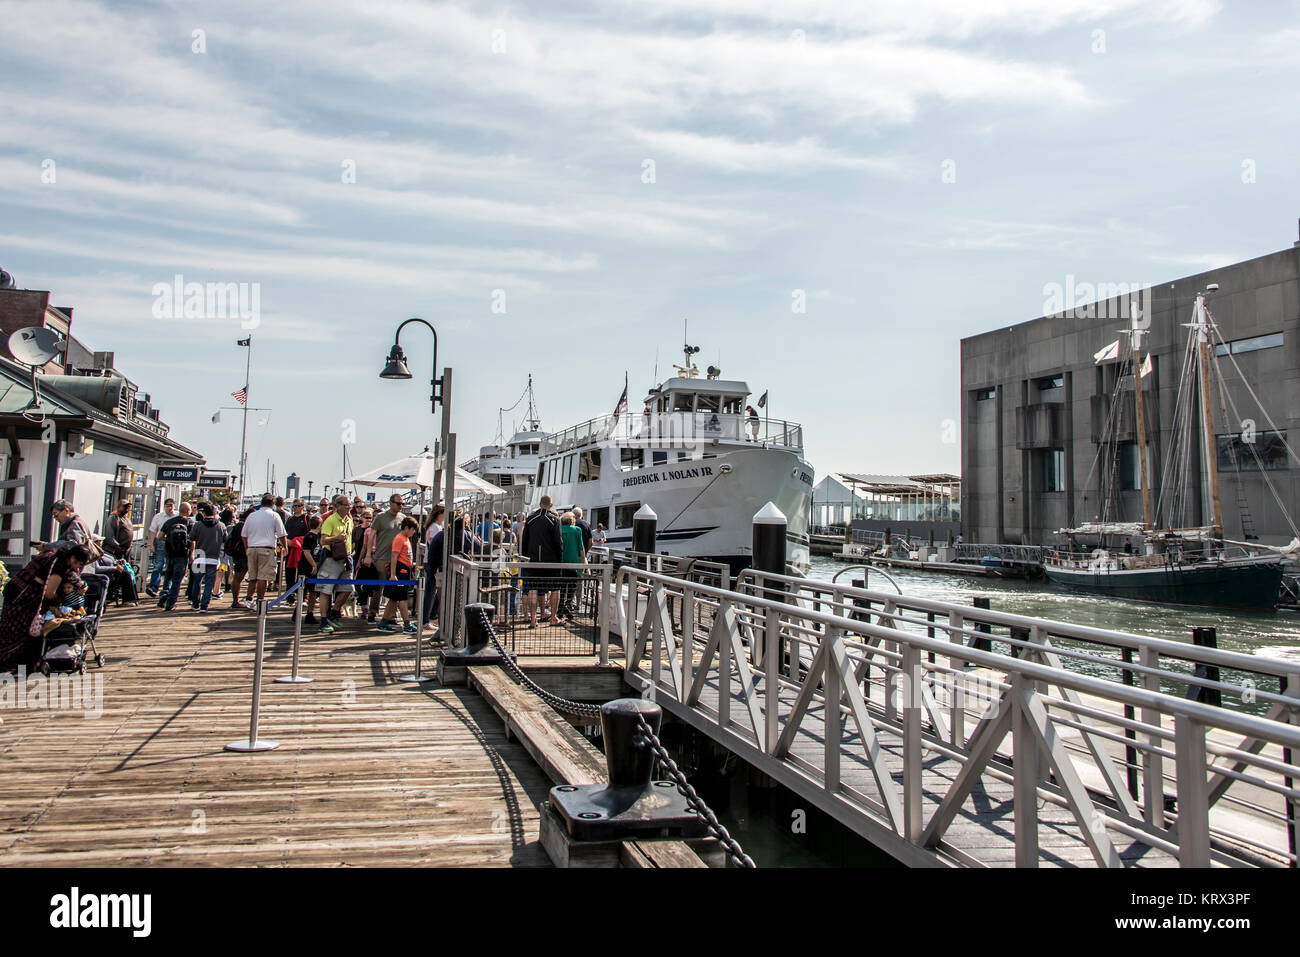 04.09.2017 Boston Massachusetts USA - People everyday life families and boats moored pier long wharf center of Boston - Stock Image